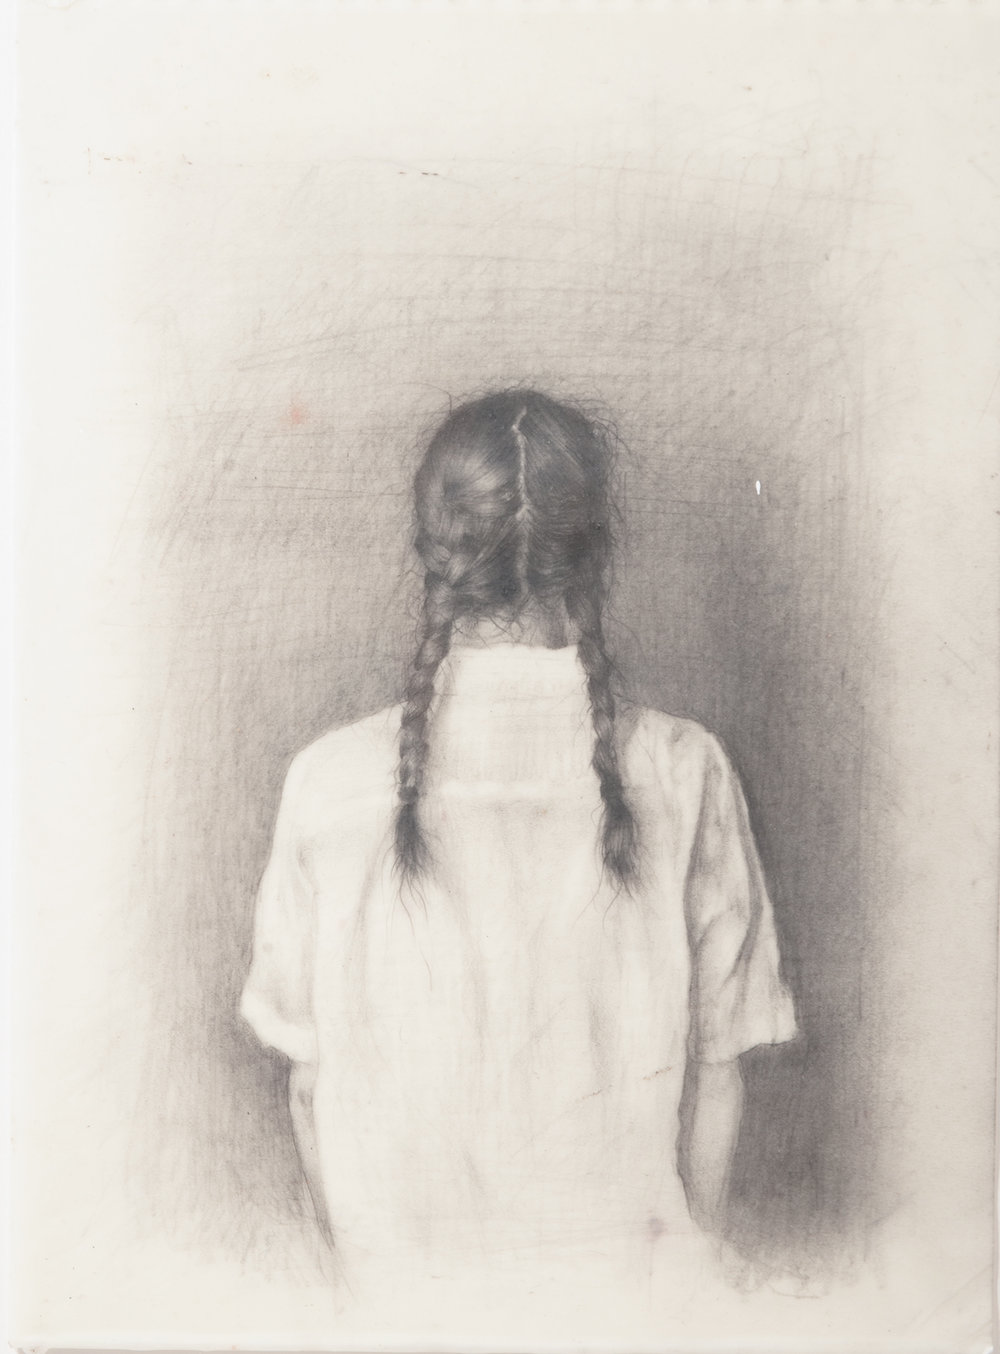 Andrew Shears  Braids  graphite on paper dipped in encaustic wax